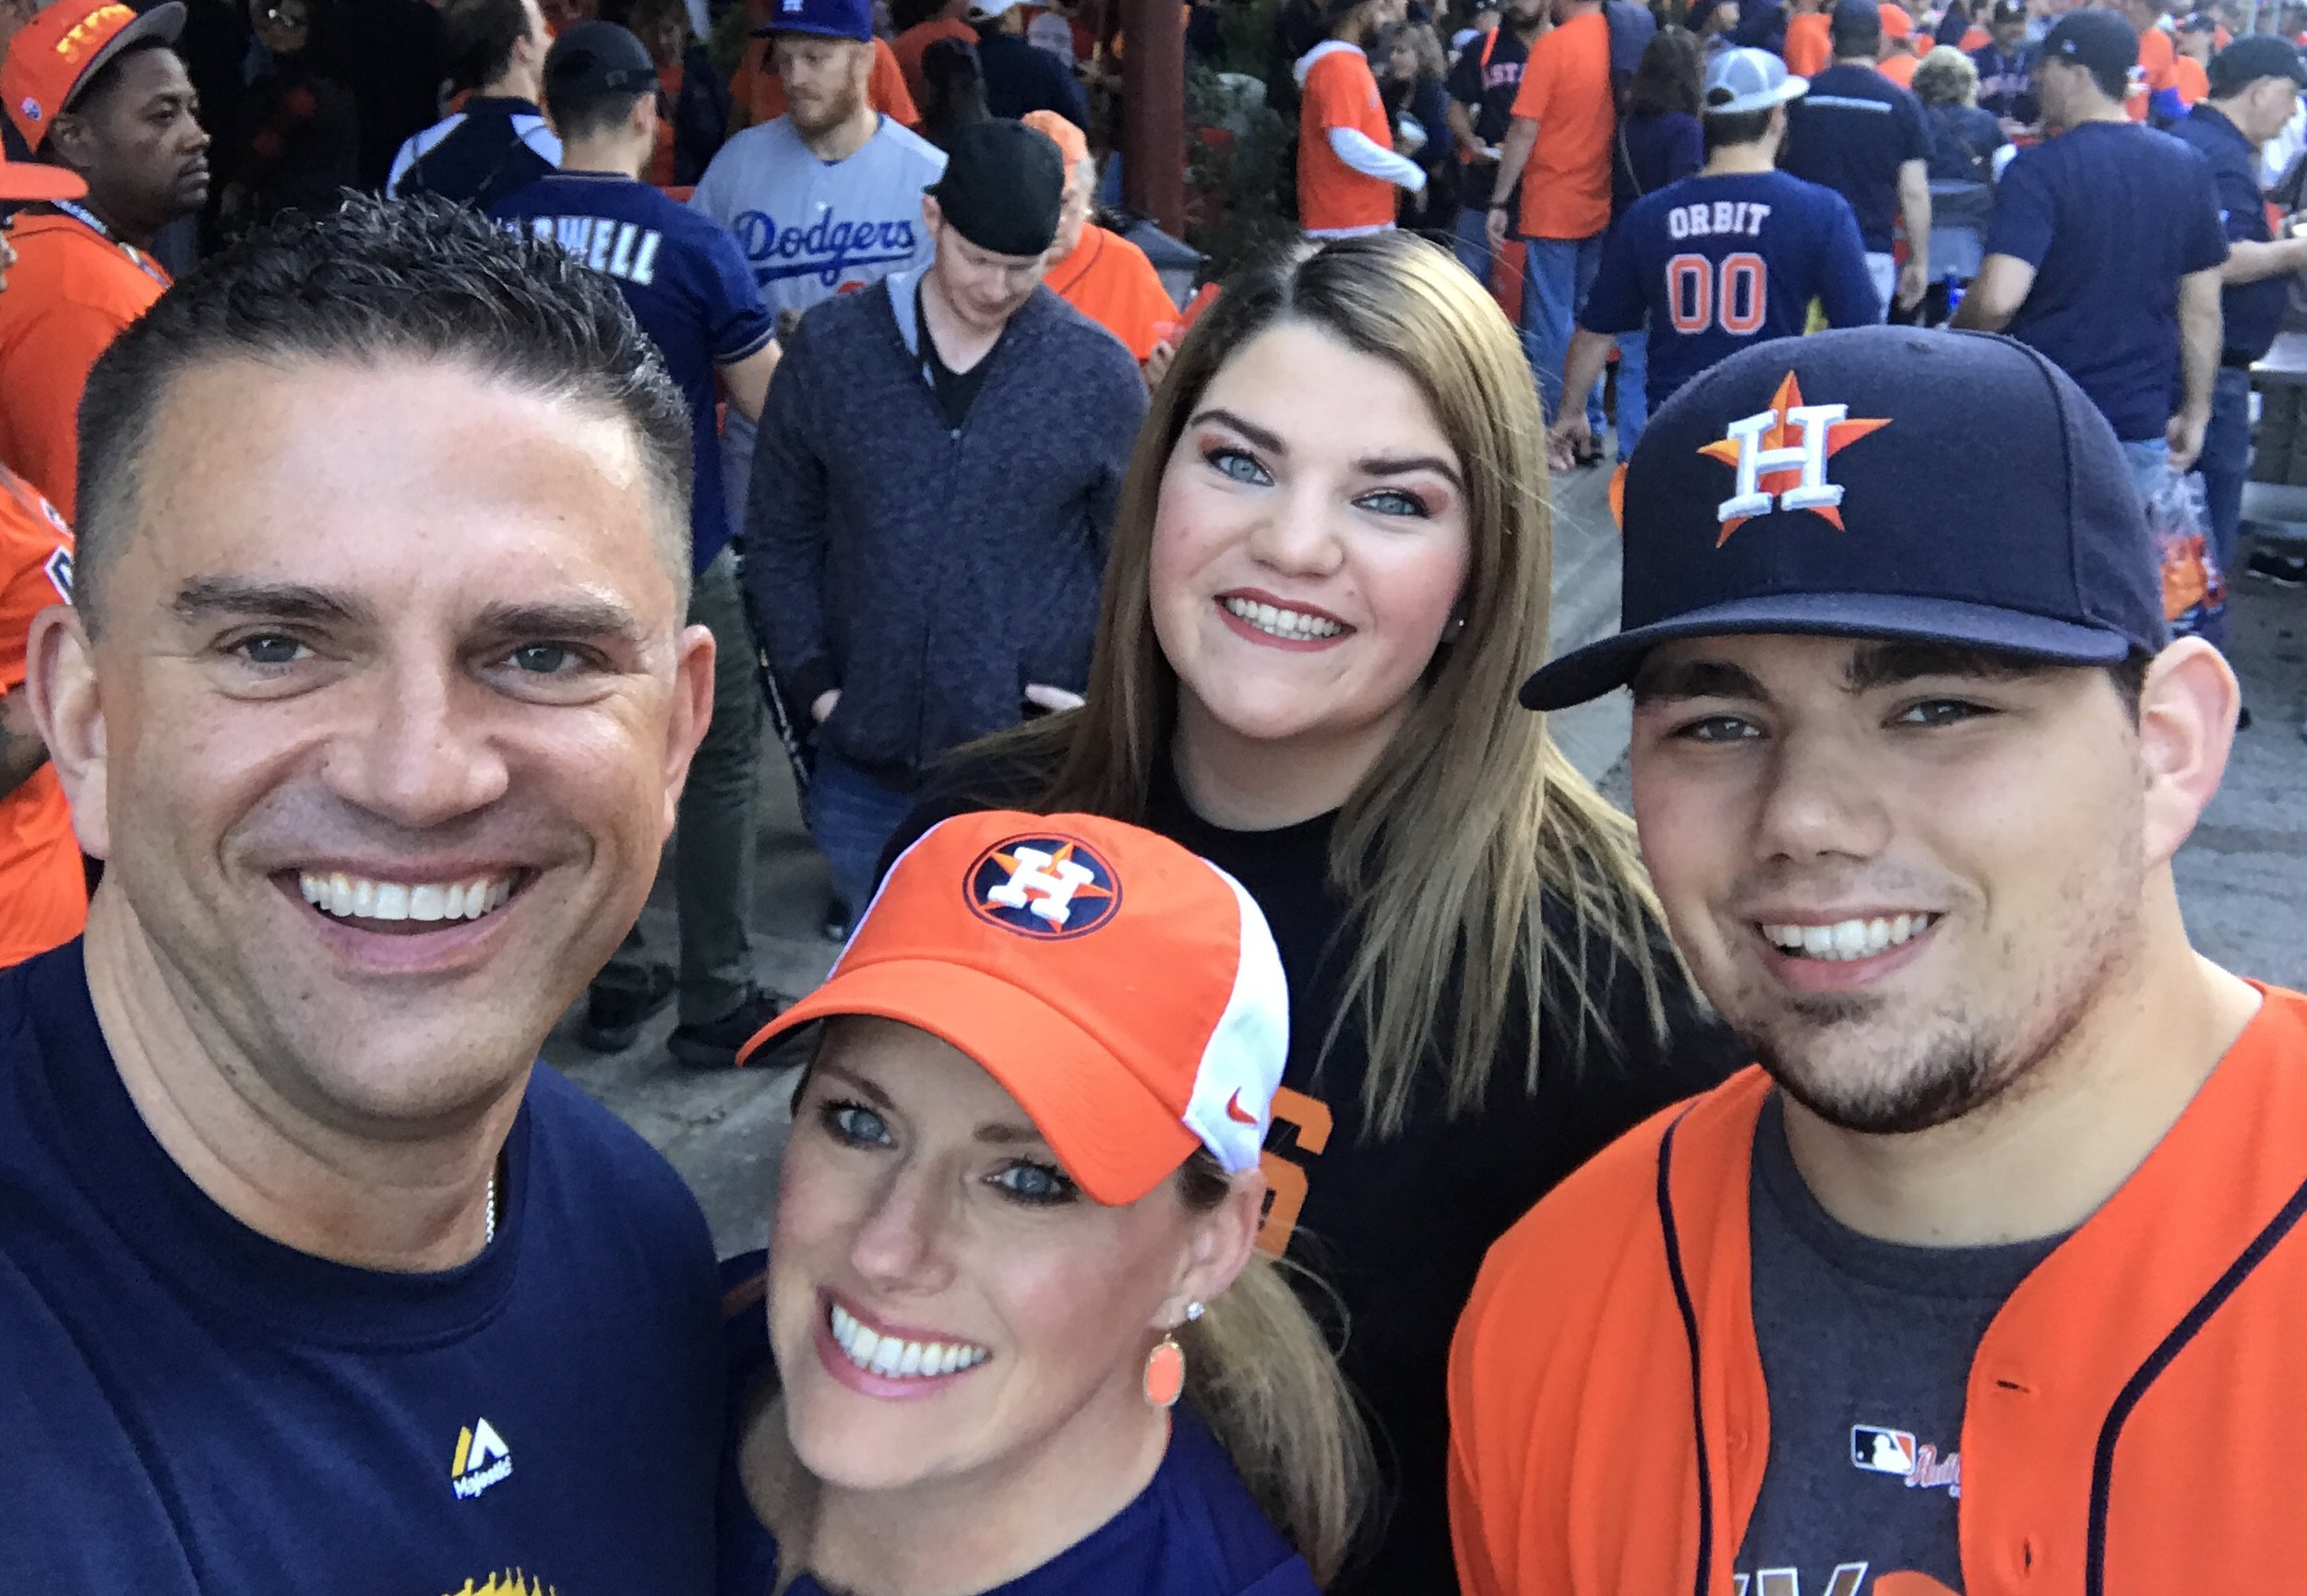 Enjoying the pre-game festivities with my sister Paje', my nephew Tanner, and my niece Madison. Our smiles would be even bigger at 12:38 a.m. central time on October 30, 2017!